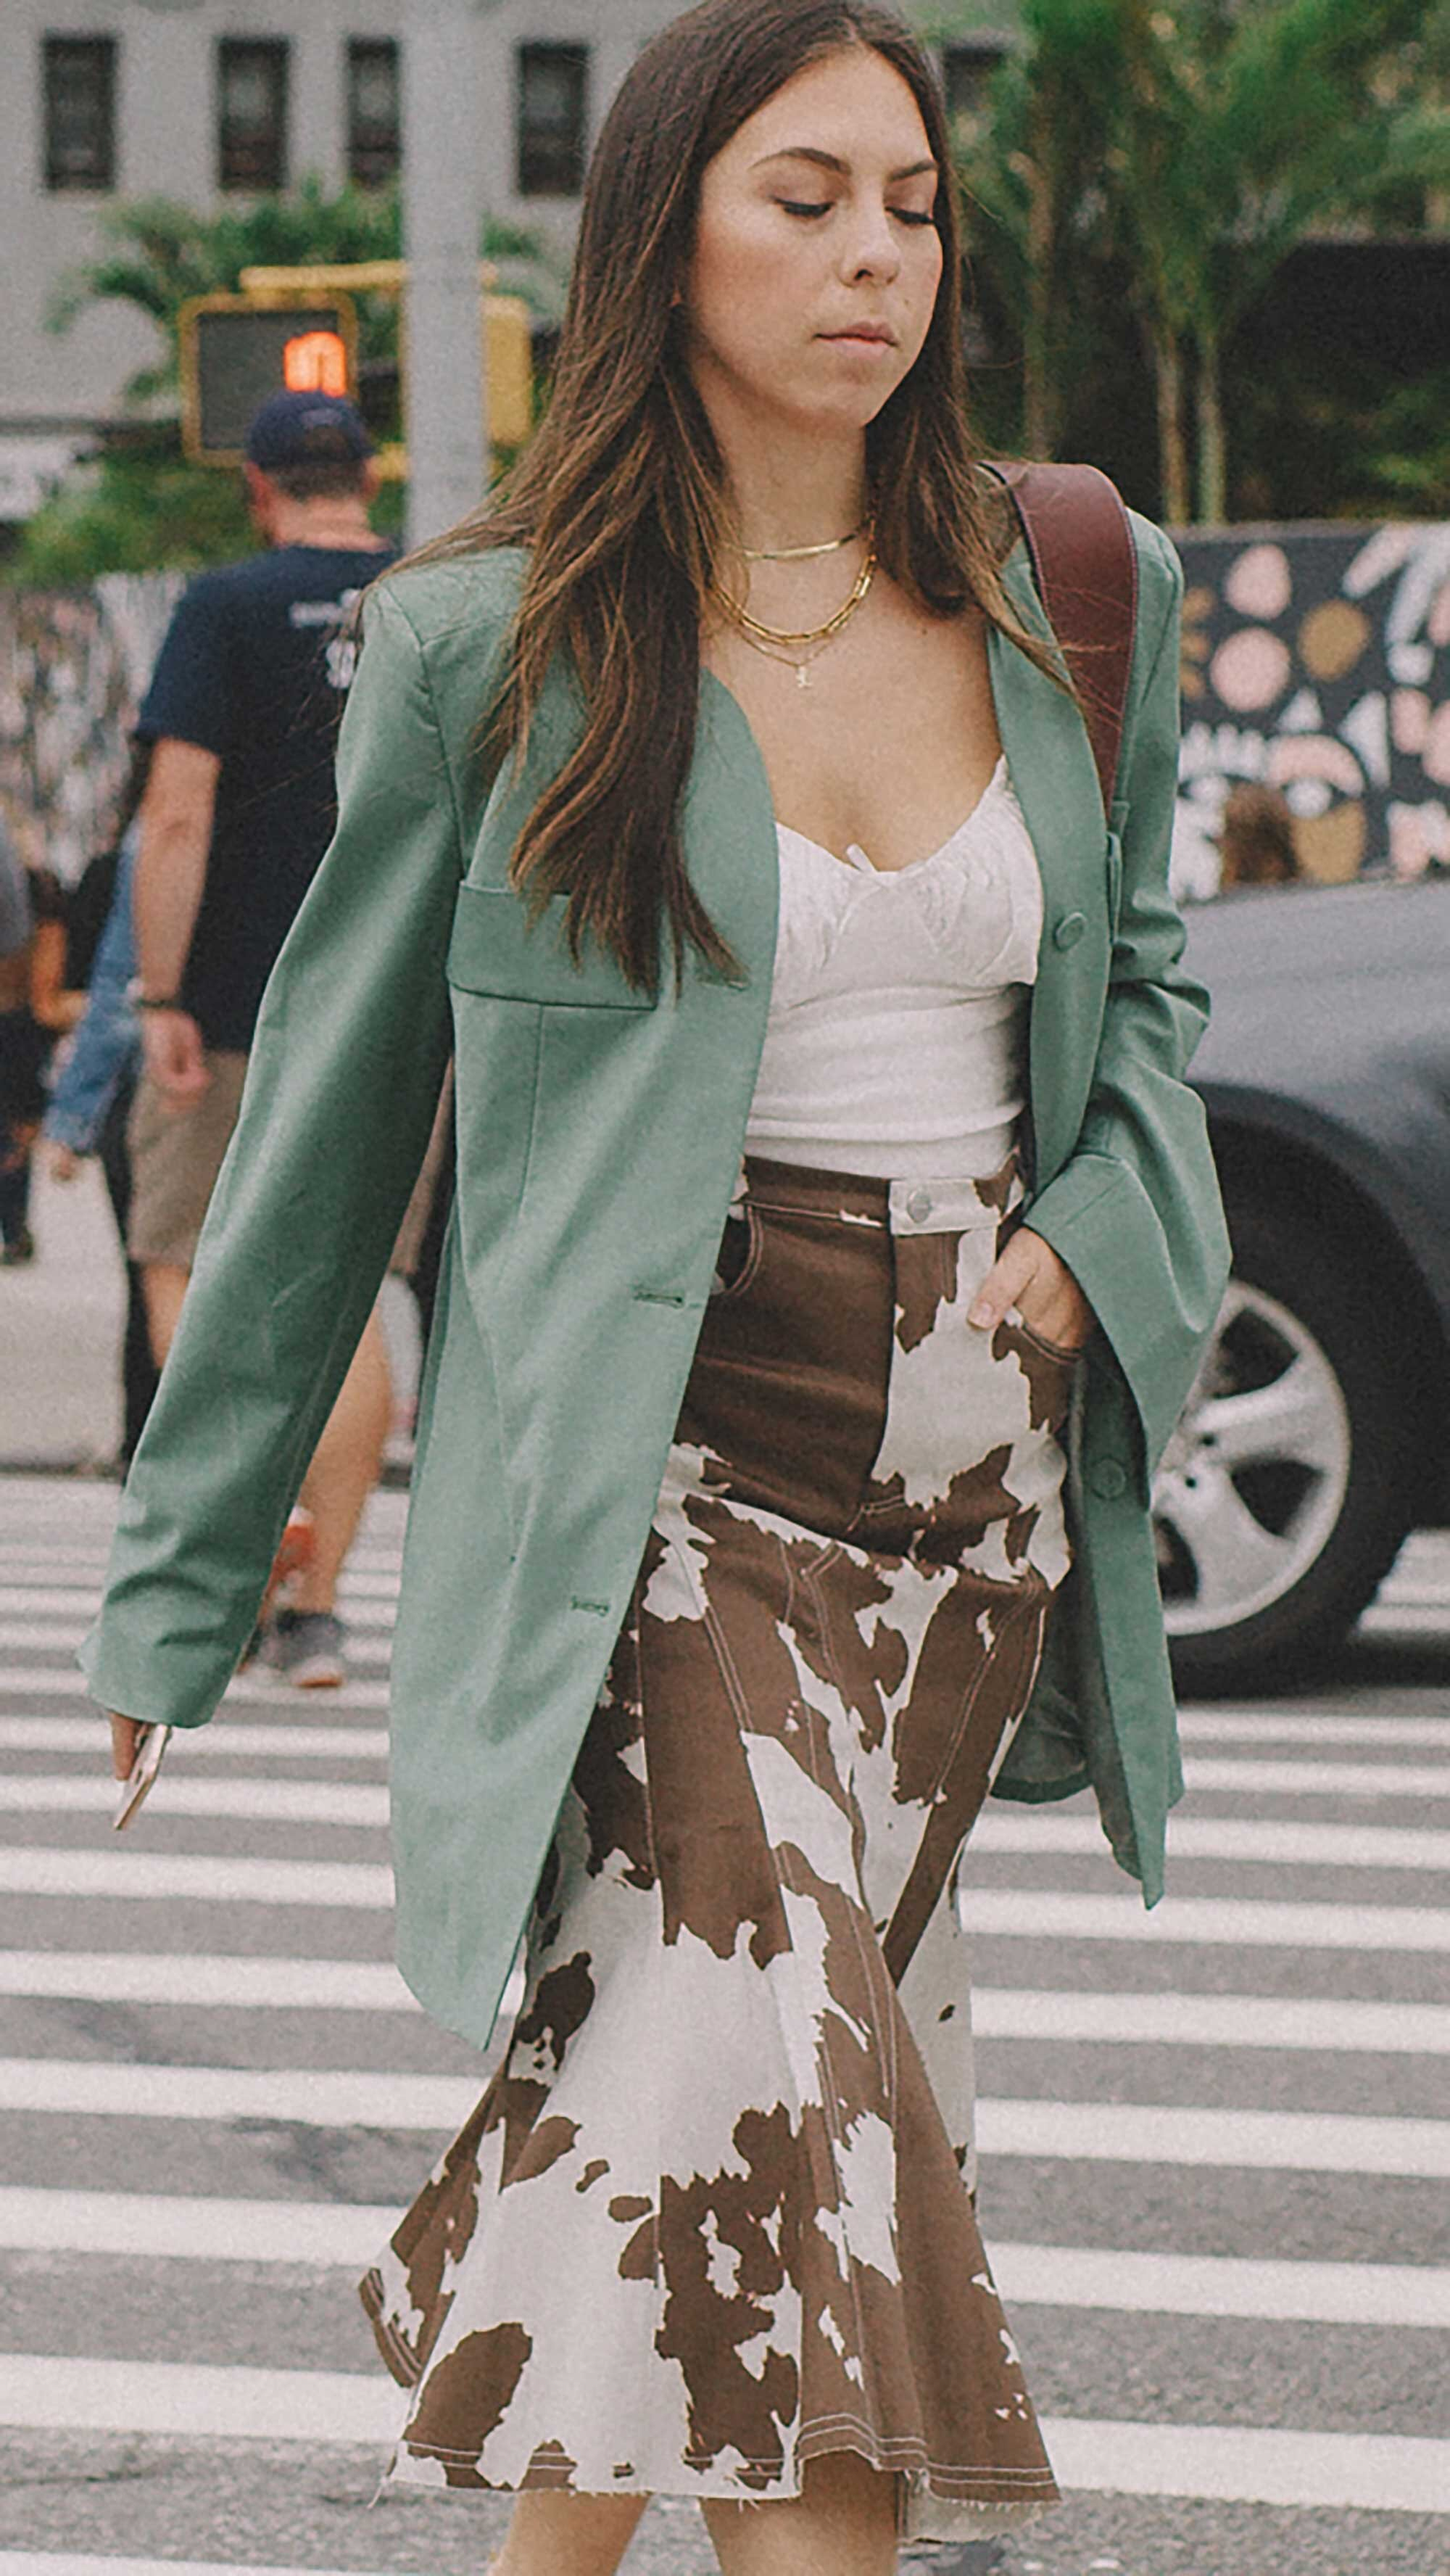 Best outfits of New York Fashion Week street style -75.jpg